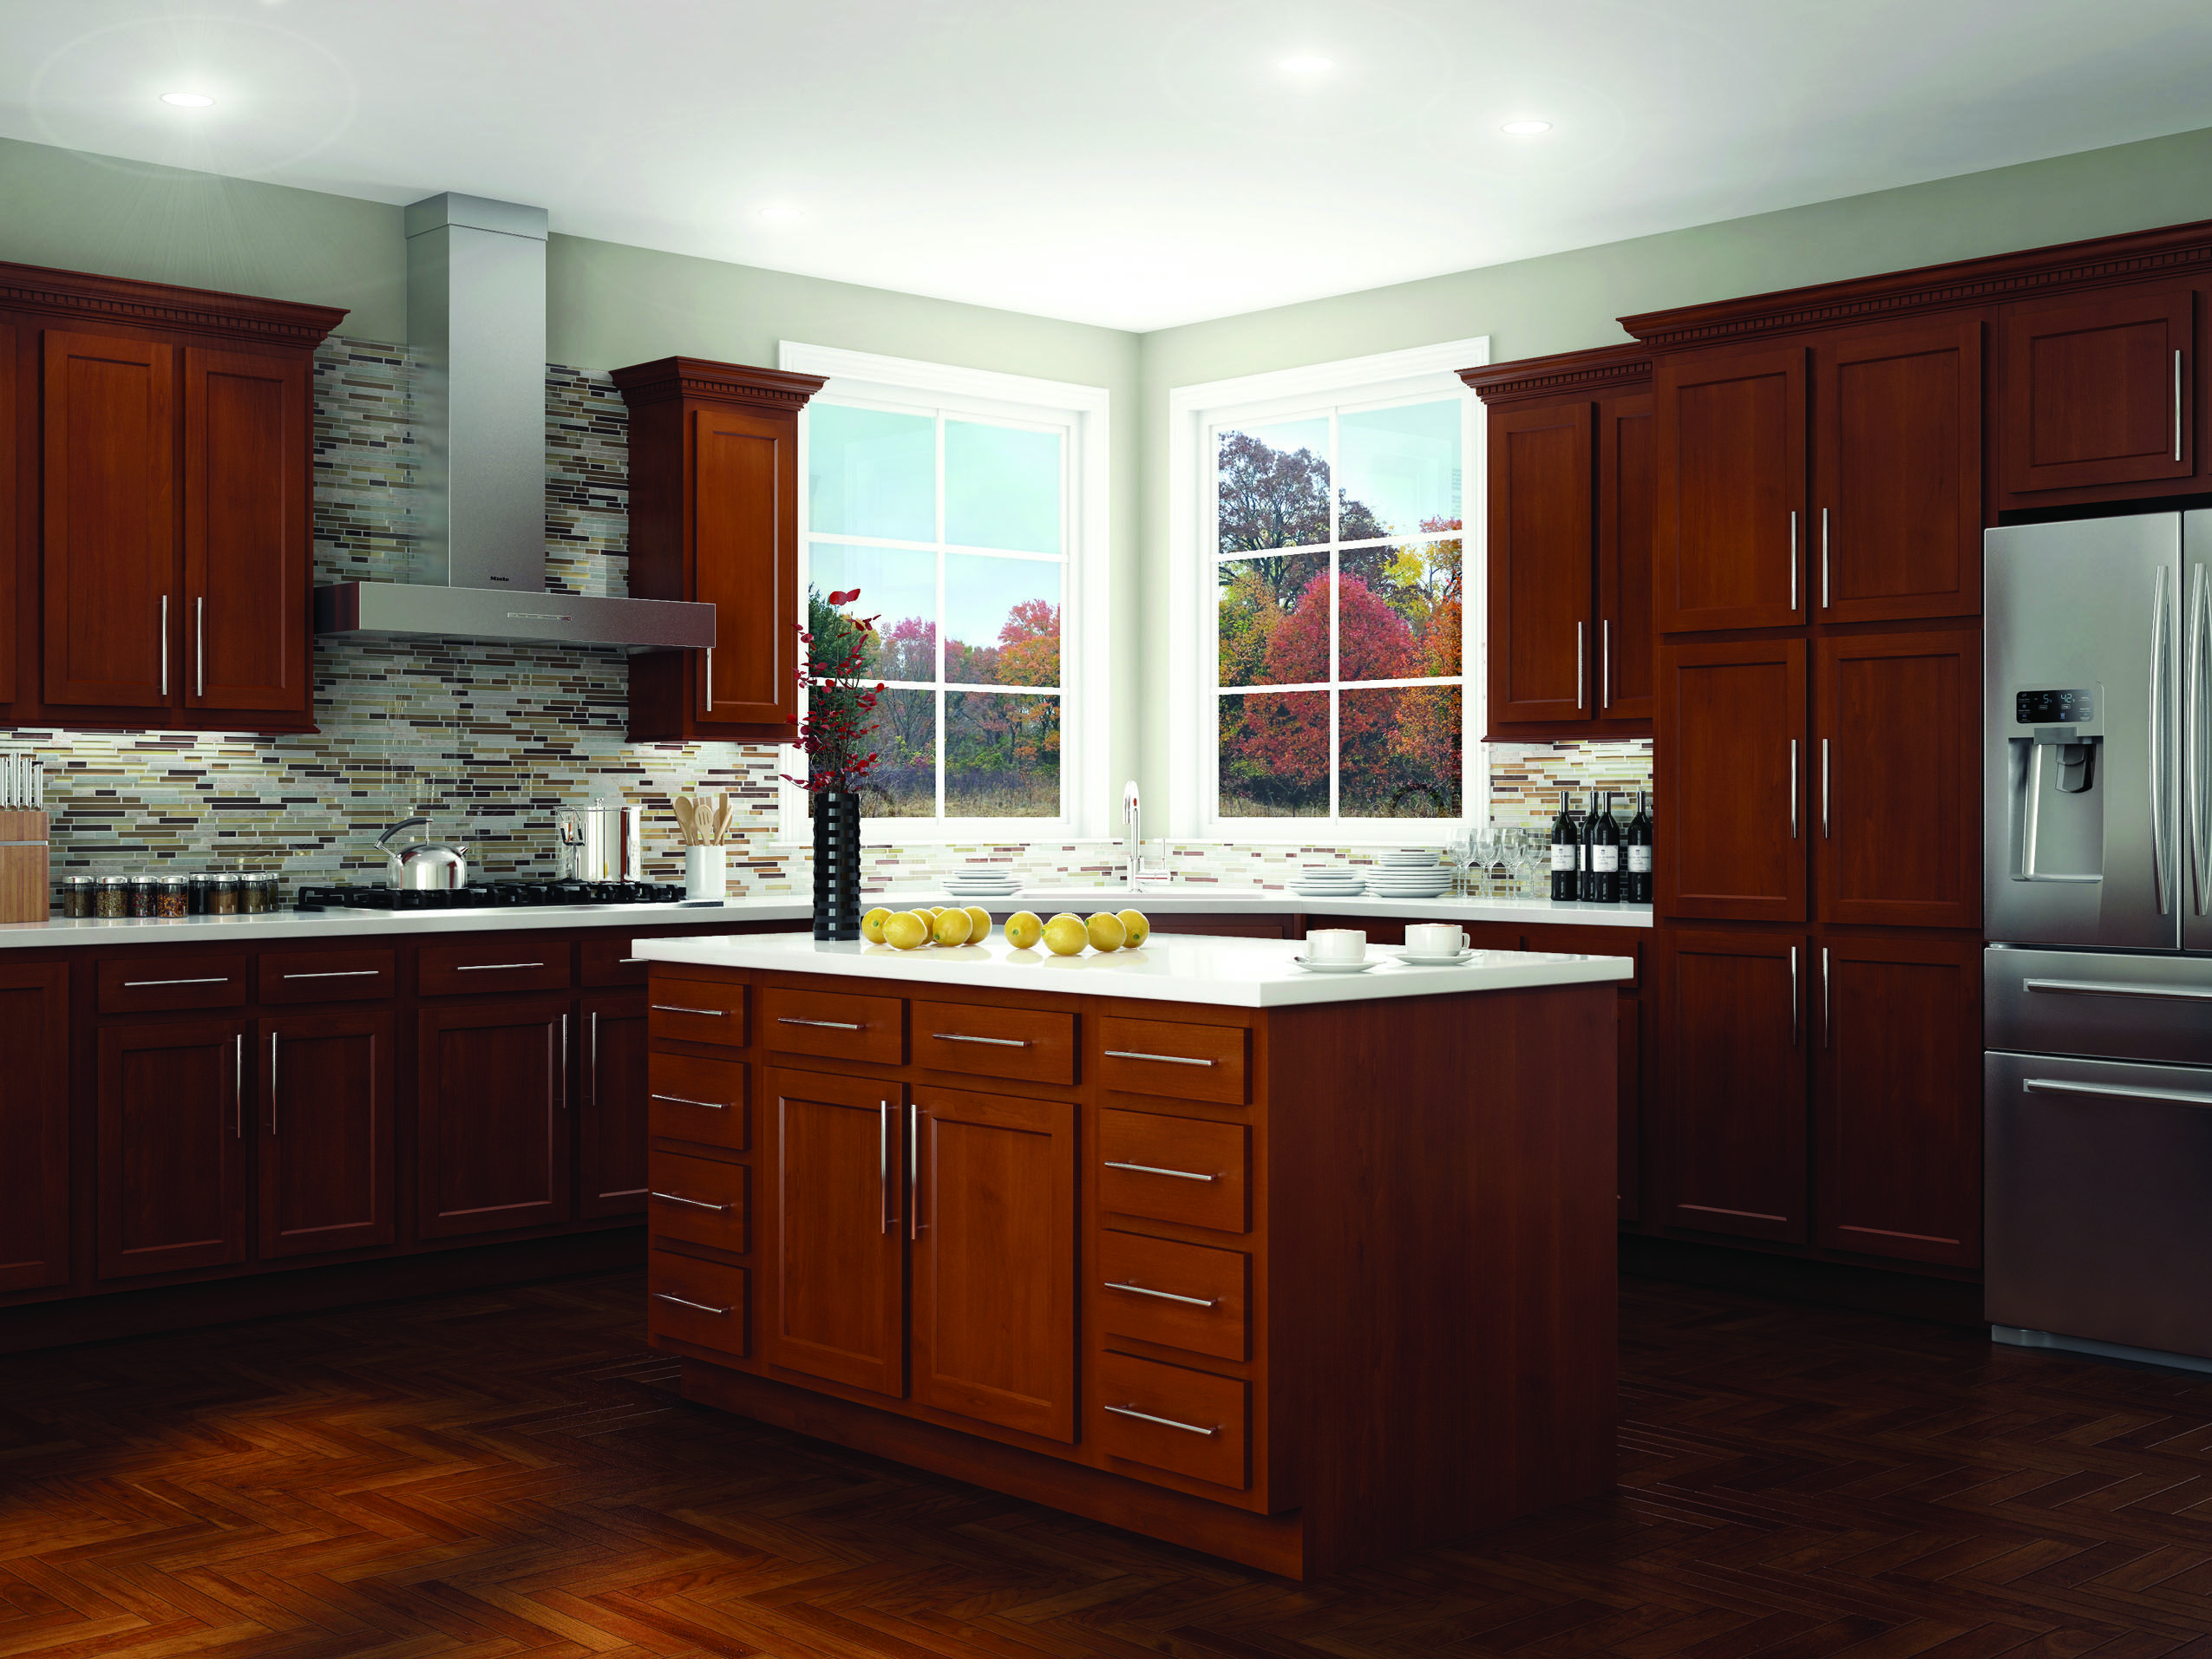 Glenwood Kitchen Cupboards Menards Kitchen Cabinets Menards Kitchen Beech Kitchen